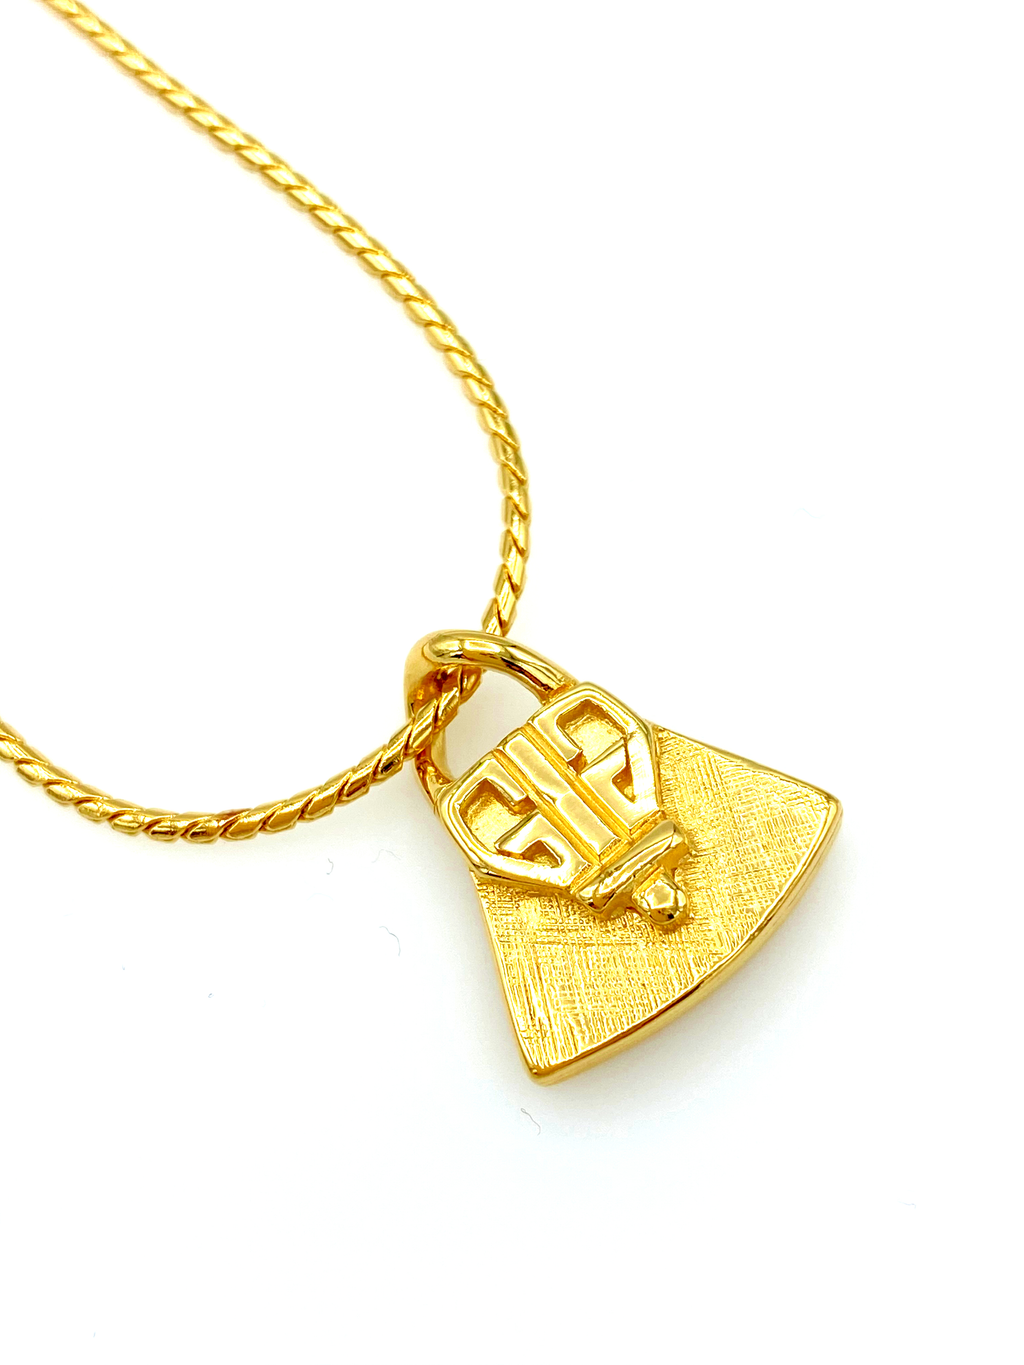 Gold Givenchy G Logo Charm Stacking Chain Bracelet-Sustainable Fashion with Vintage Style-Trending Designer Fashion-24 Wishes